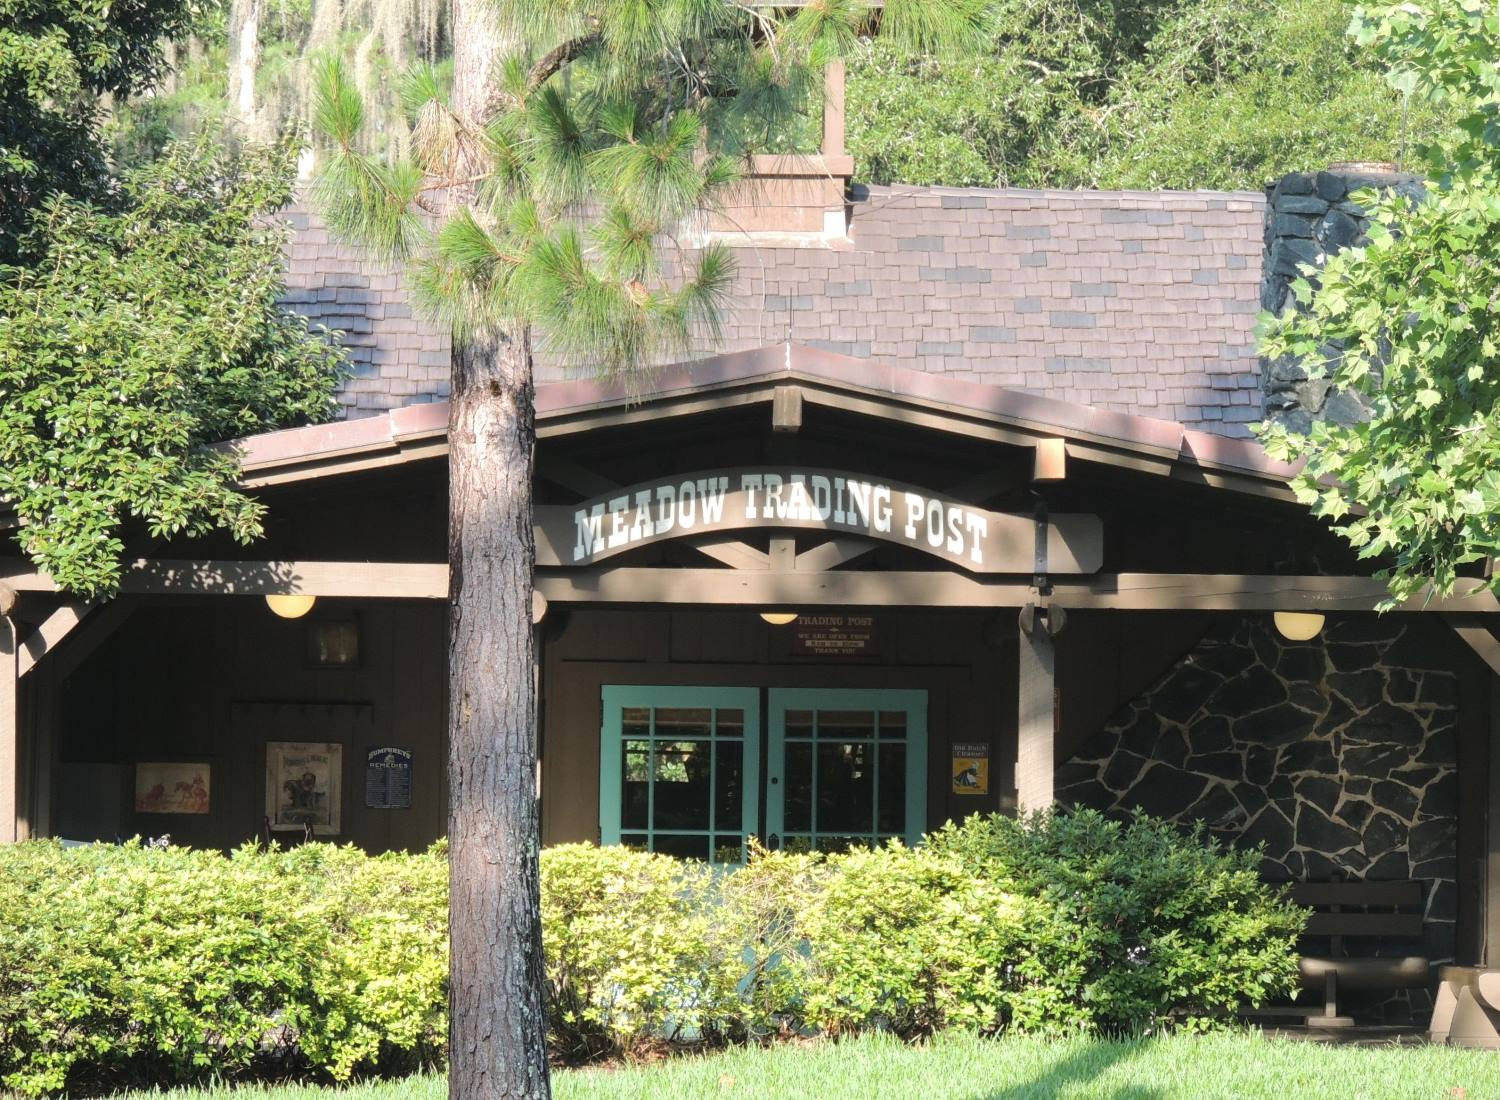 Disney's Fort Wilderness Resort and Campground Meadow Trading Post